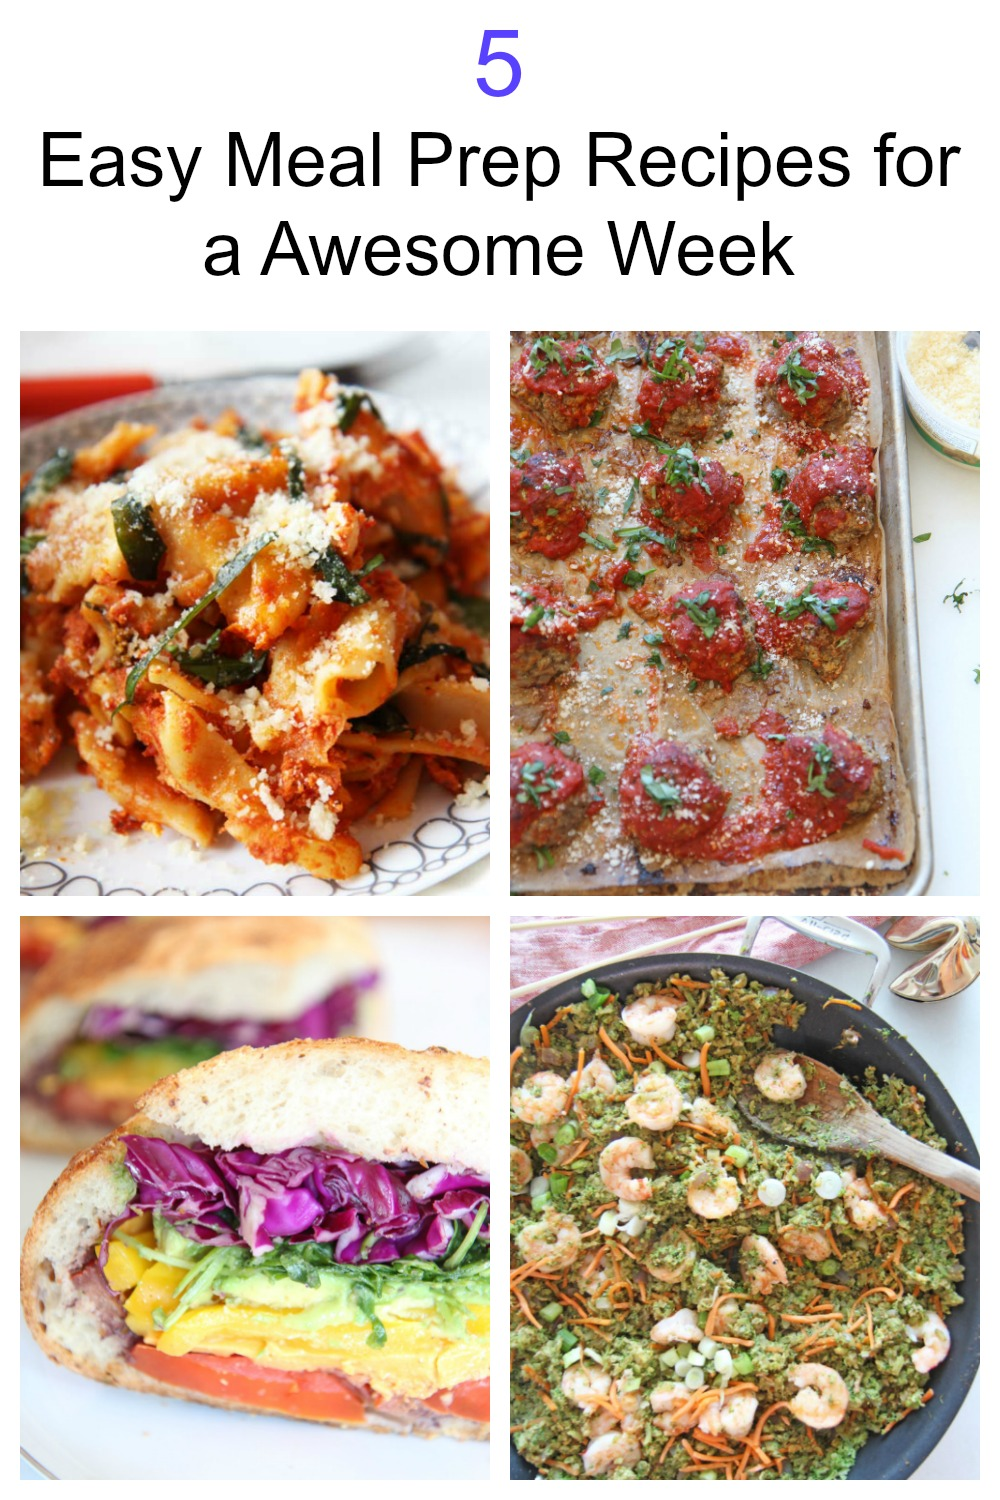 5 Easy Meal Prep Recipes for a Awesome Week